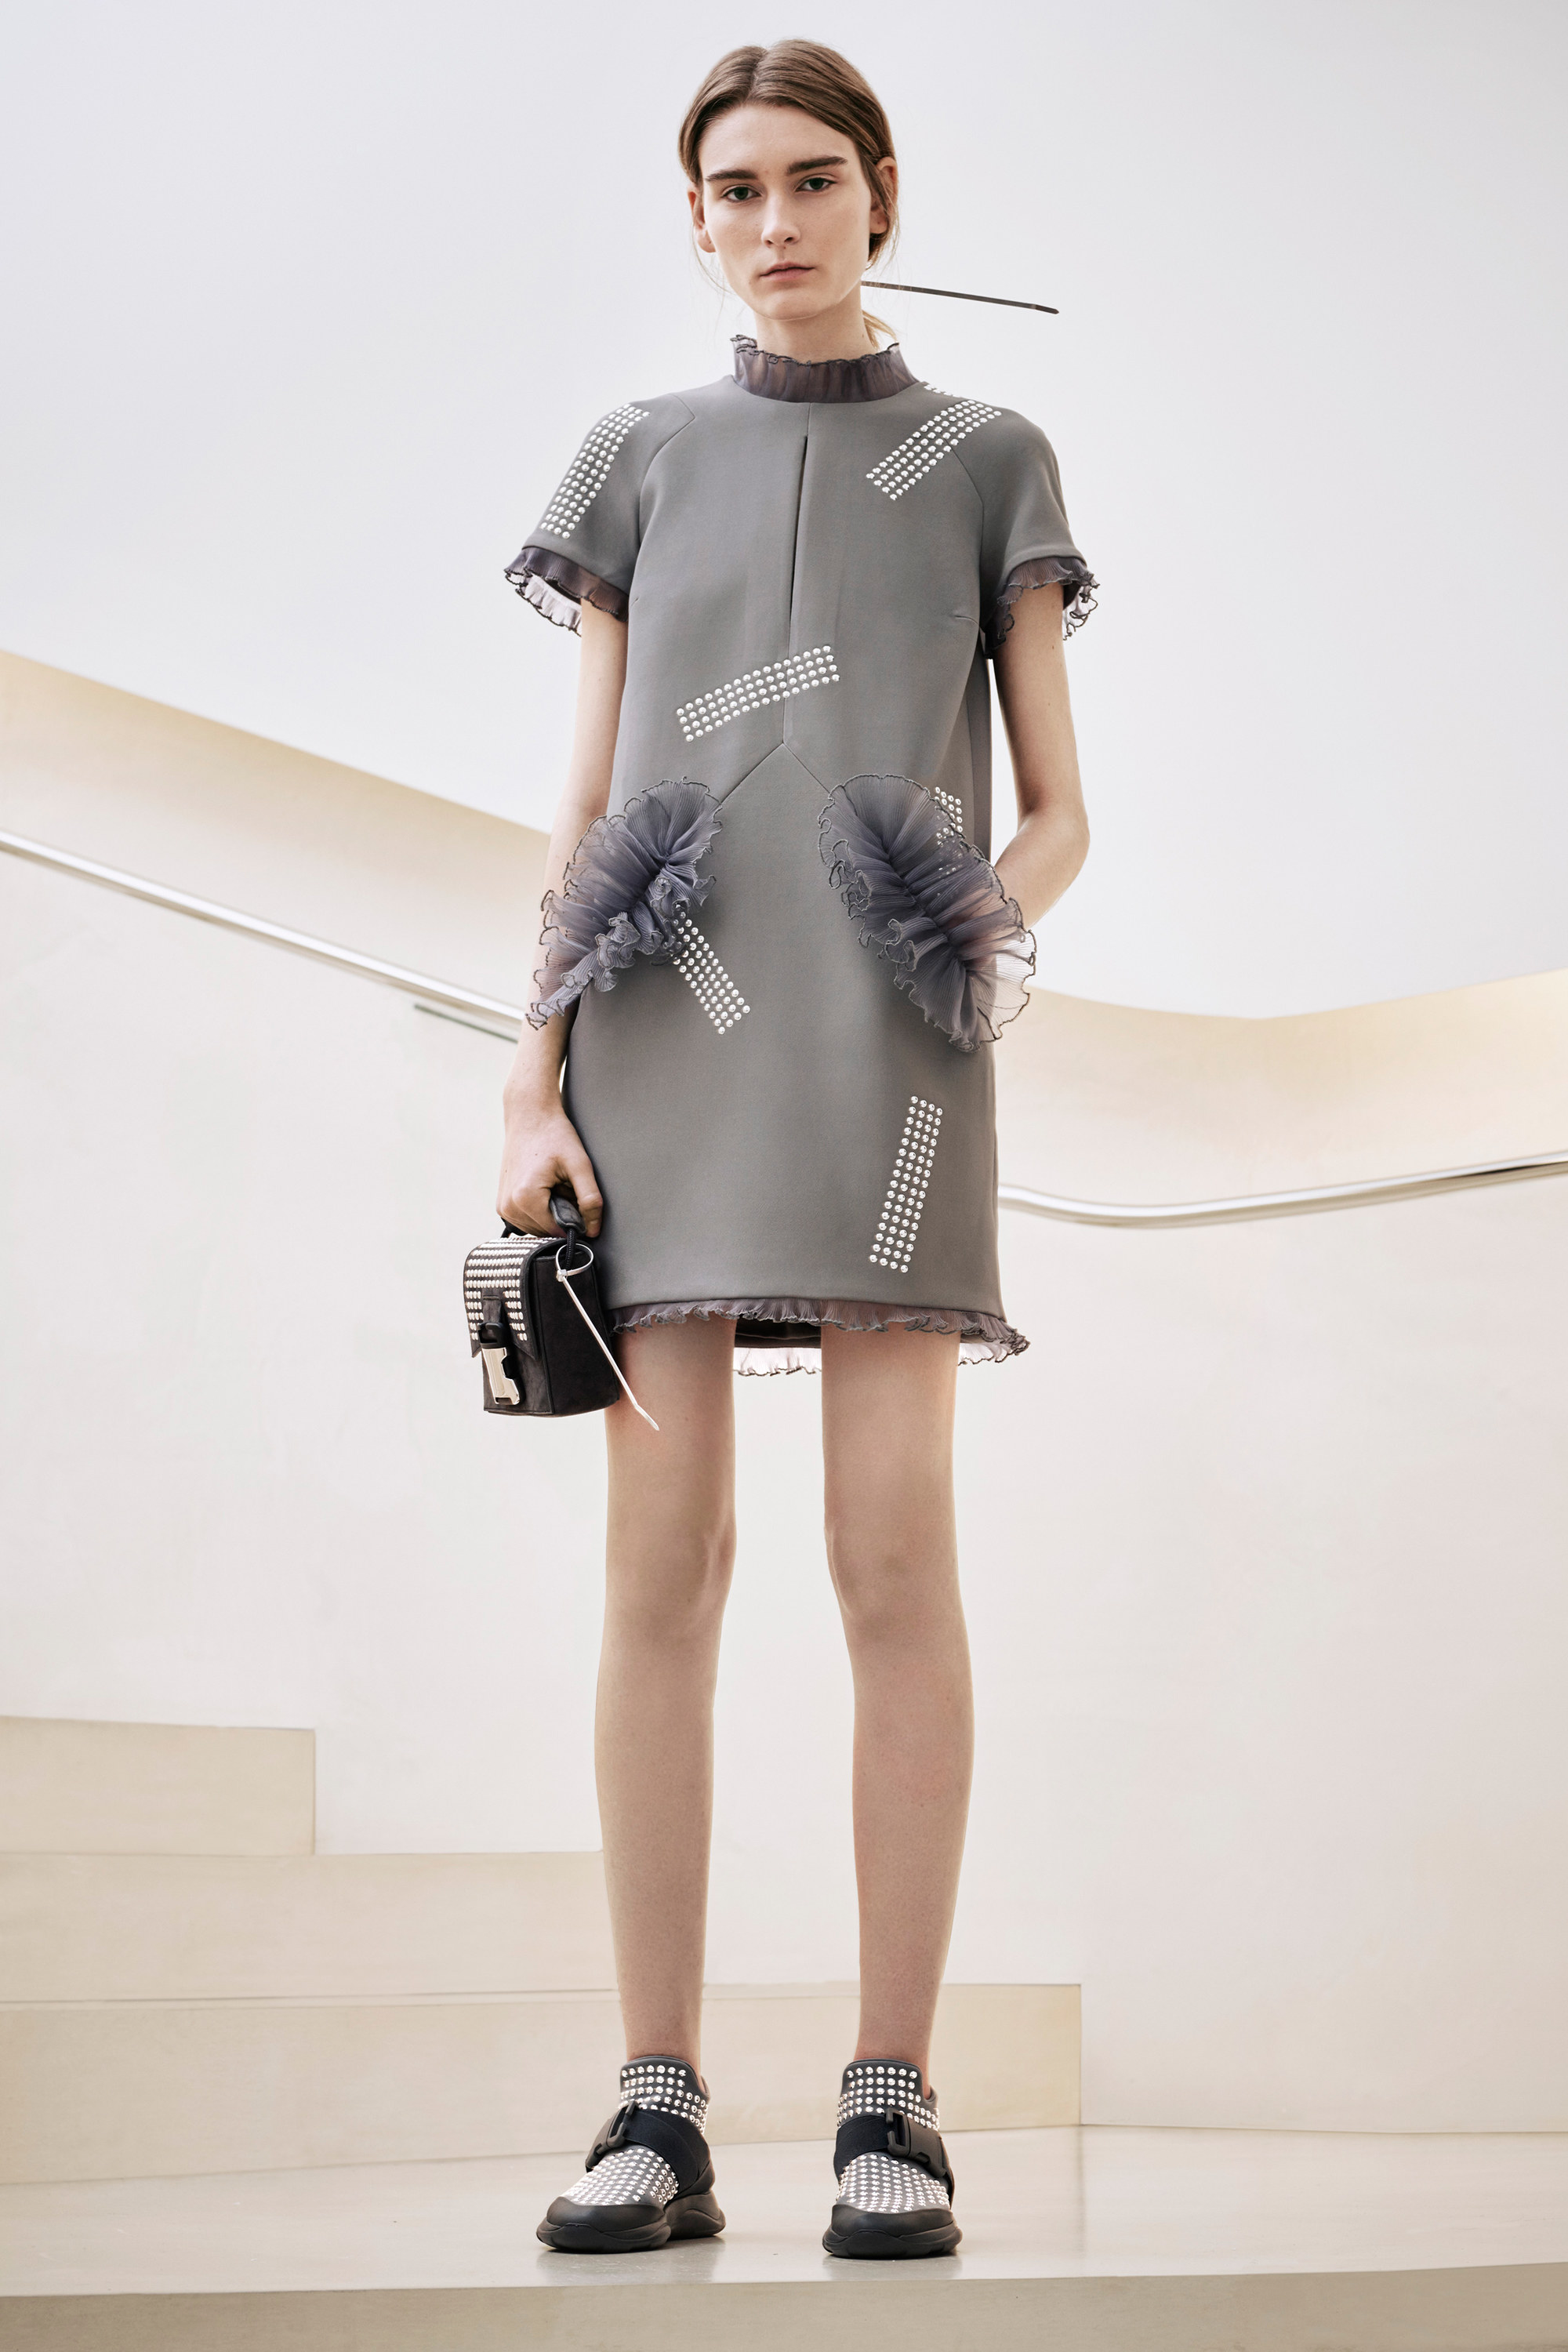 christopher-kane-pre-fall-2016-lookbook-34-2.jpg